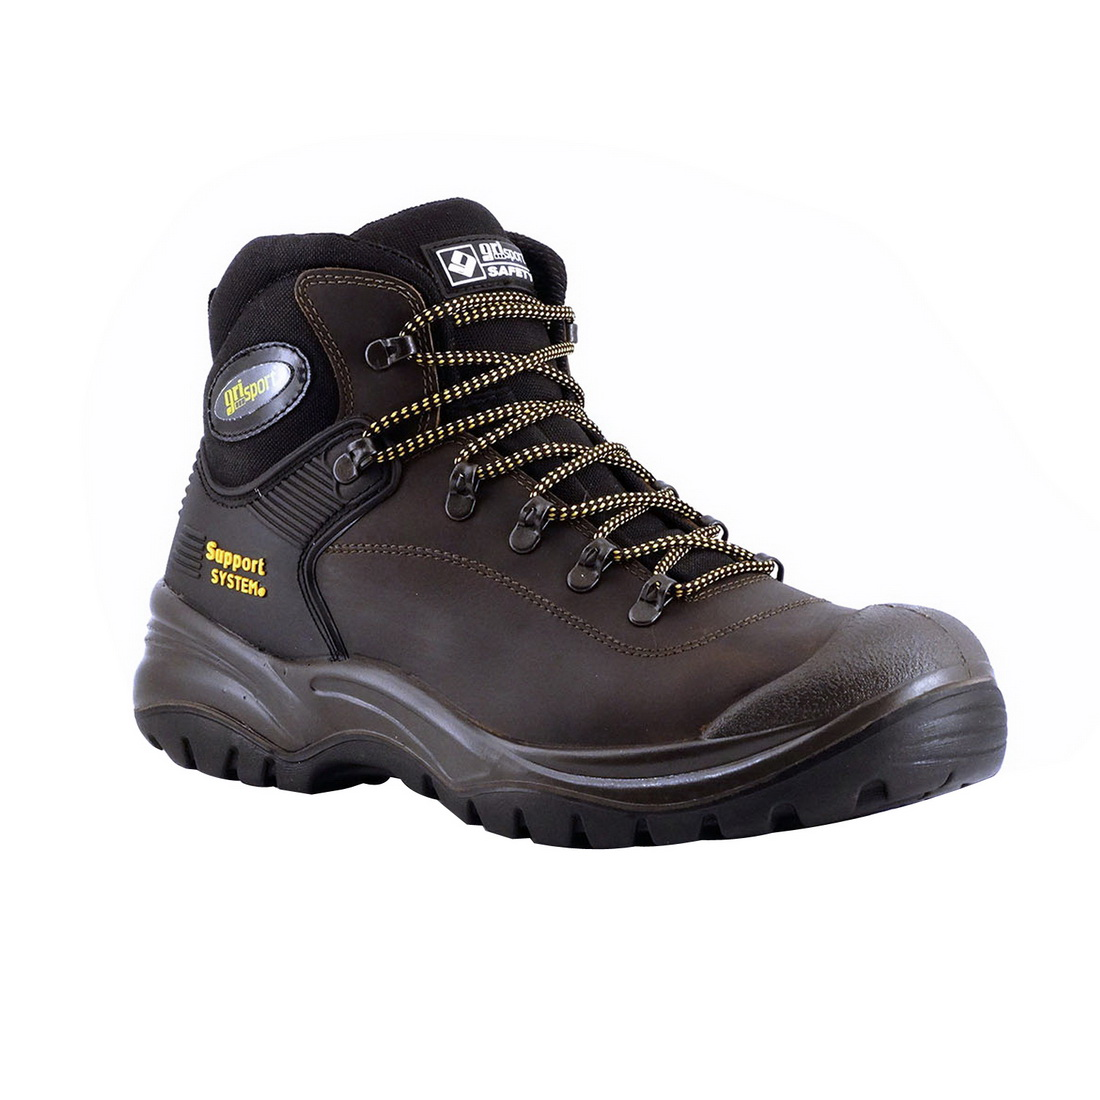 Contractor Safety Boot Size 9 Brown